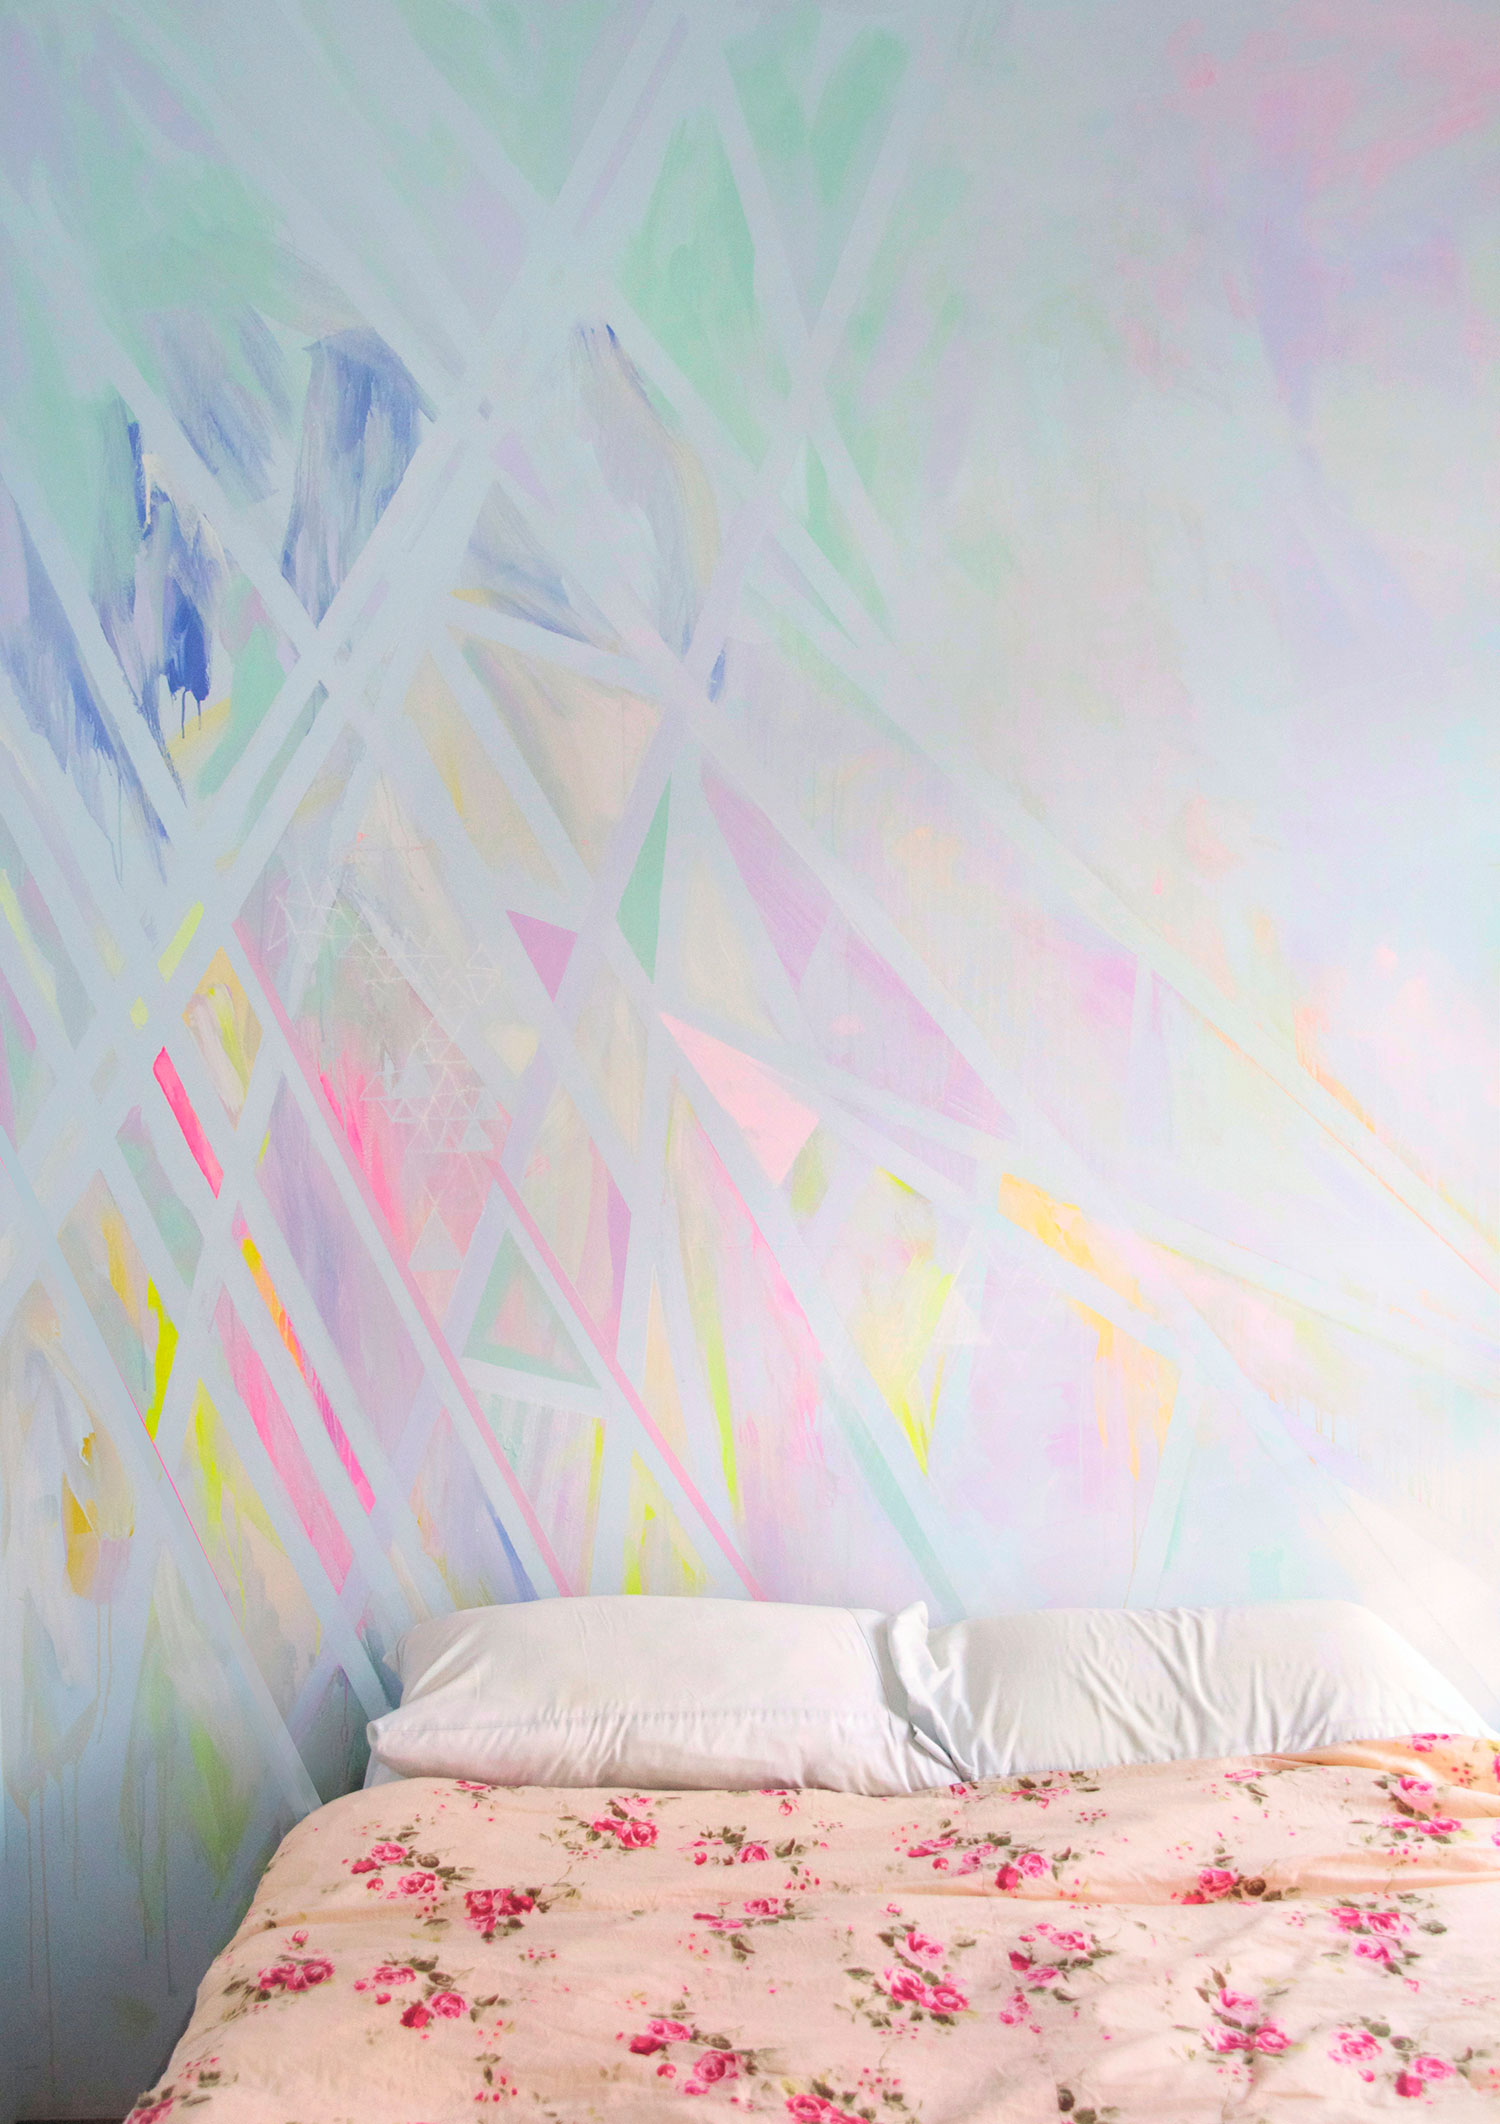 Abstract prism wall art mural painted in pastel colors located in NYC bedroom, styled interior design shoot with floral bedding and blue linen.